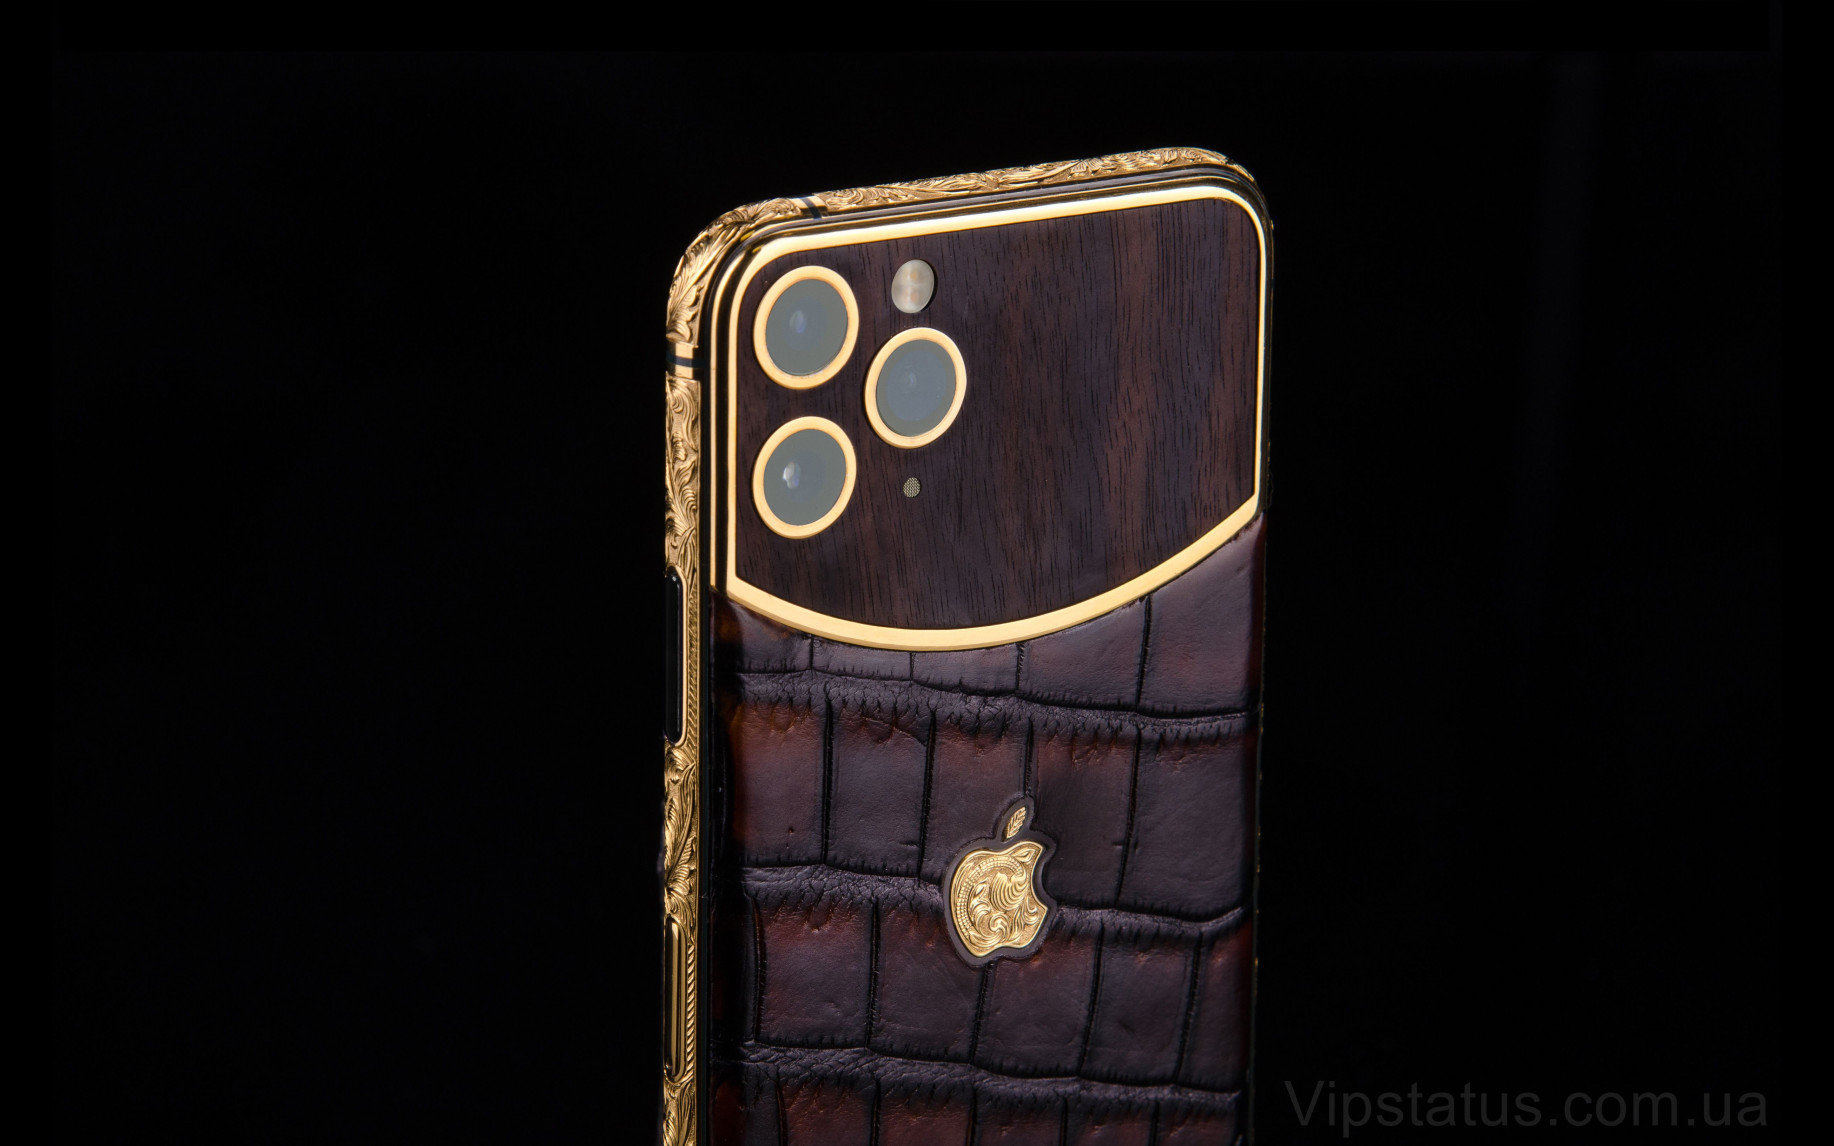 Elite Brown Edition IPHONE 11 PRO MAX 512 GB Brown Edition IPHONE 11 PRO MAX 512 GB image 2